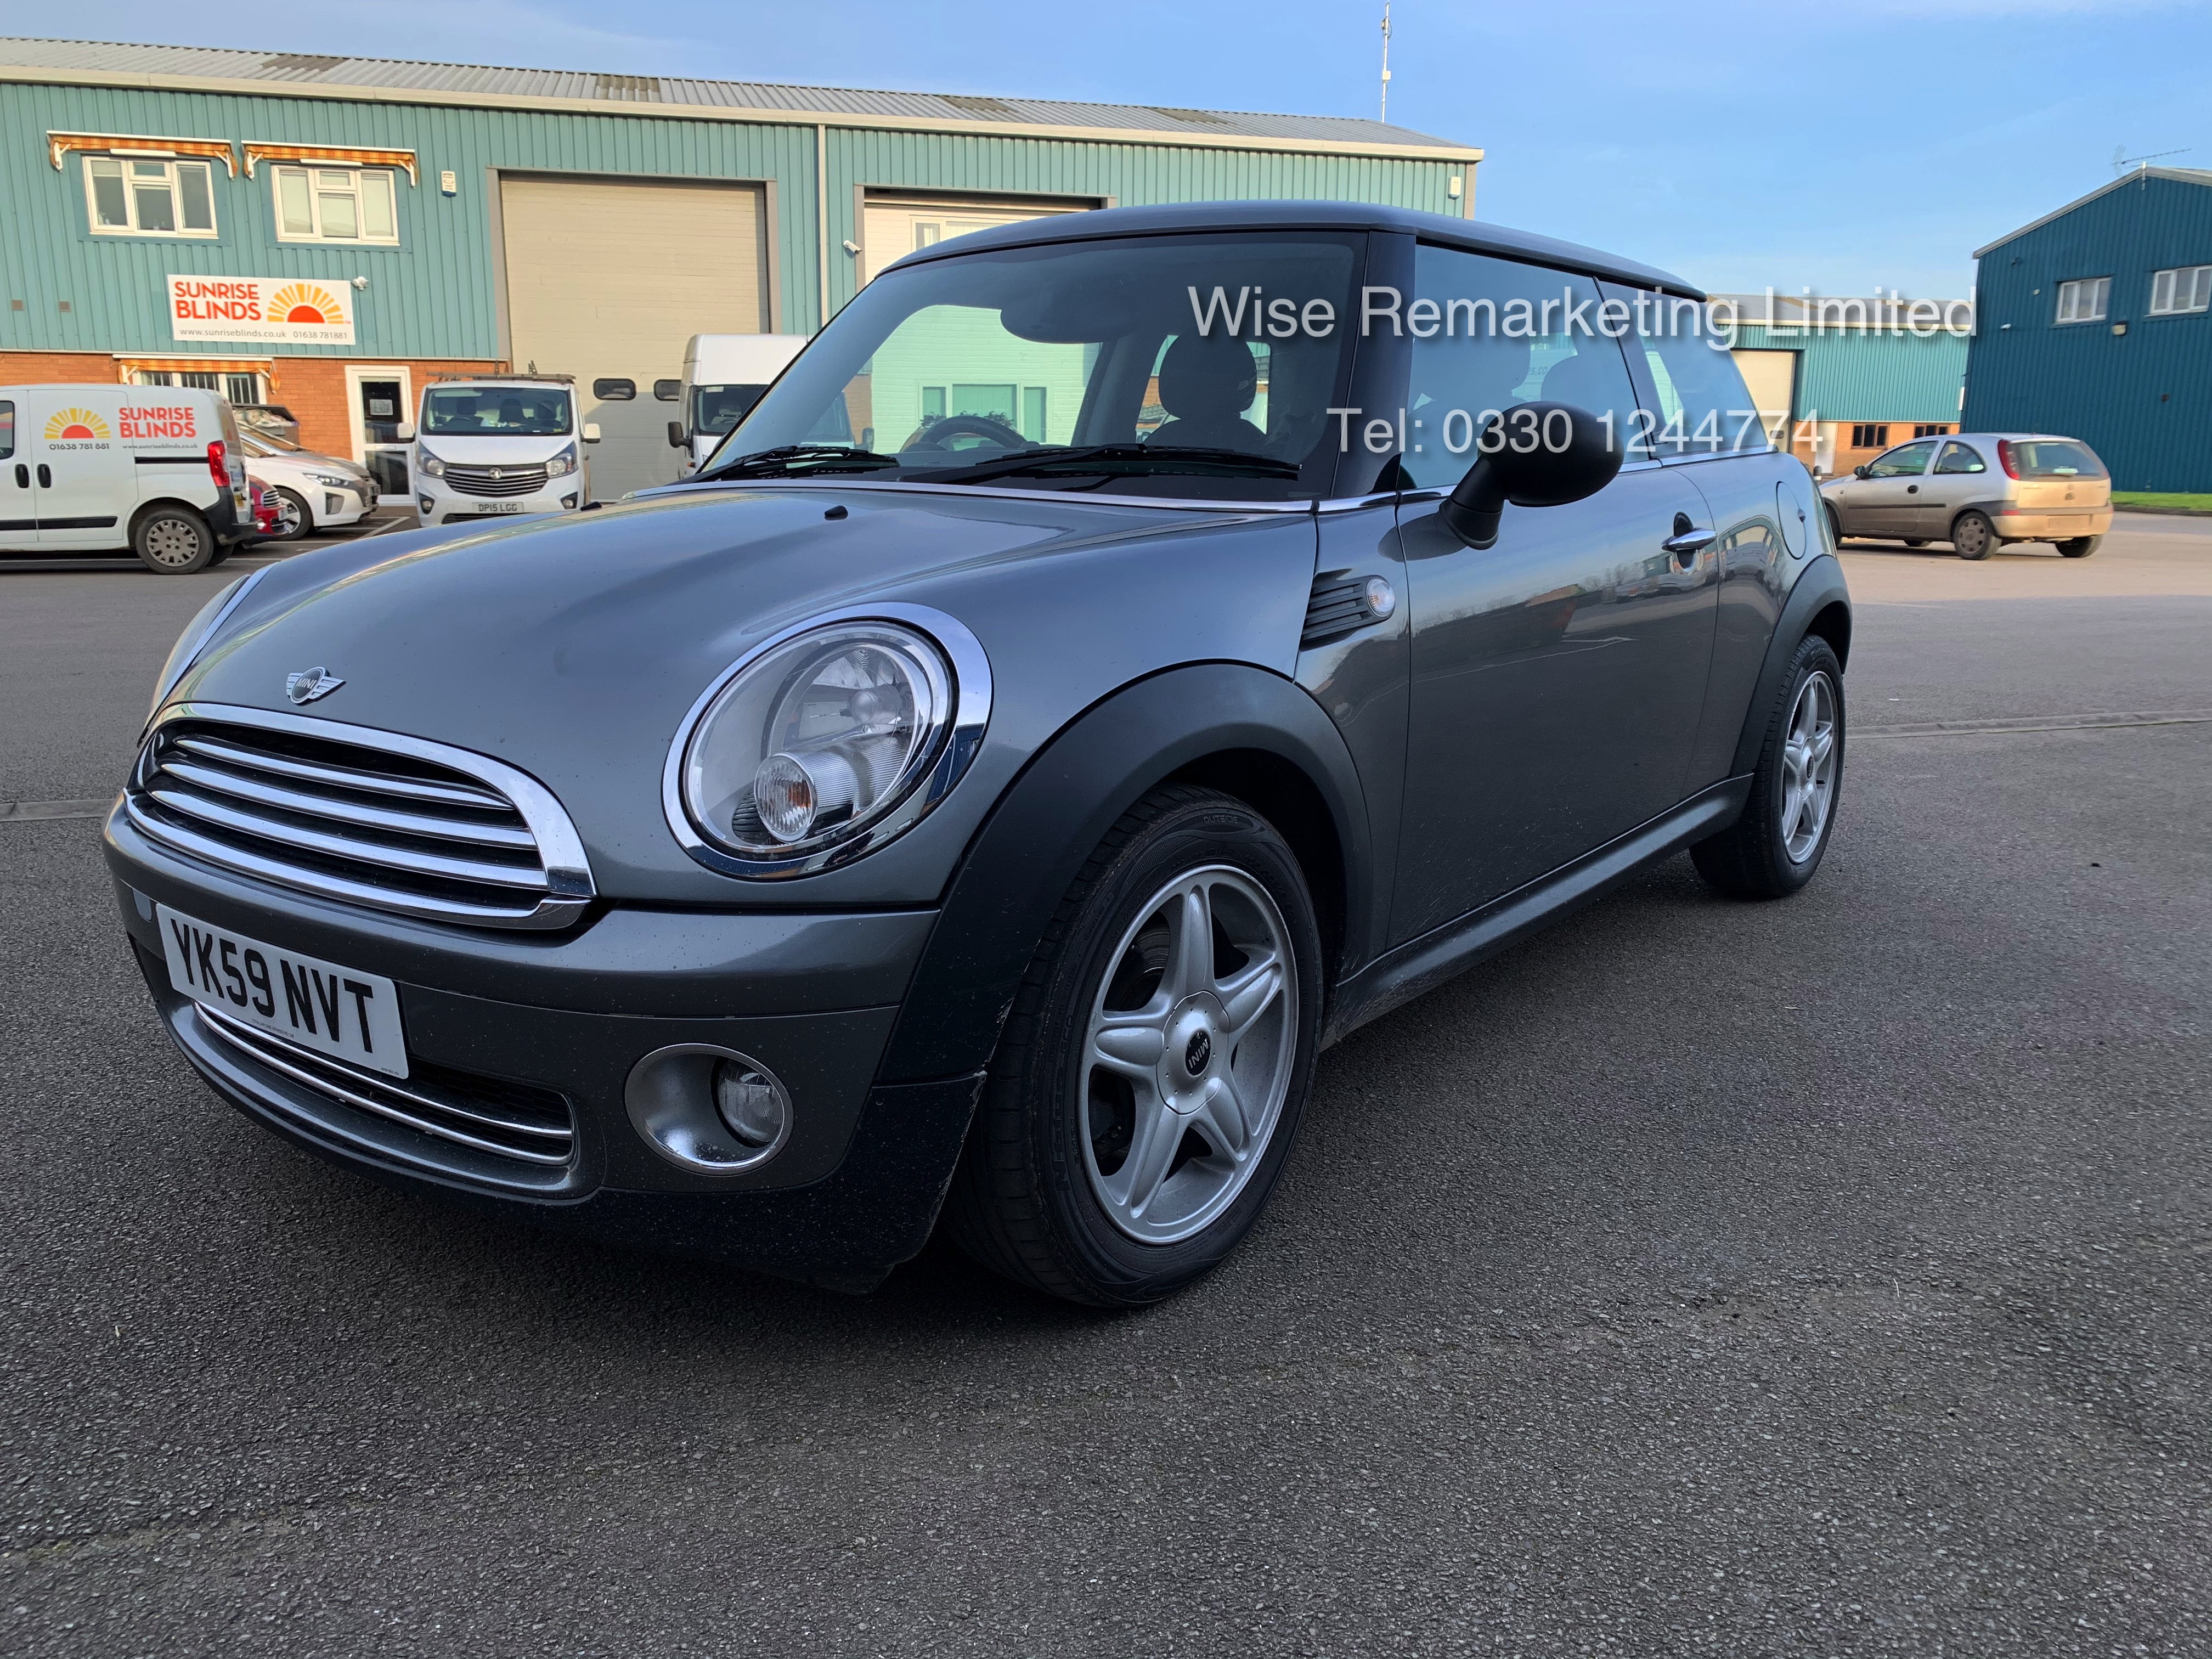 (RESERVE MET) Mini One Graphite 1.4 Petrol - 2010 Model - Service History - 6 Speed - Air Con - - Image 2 of 19